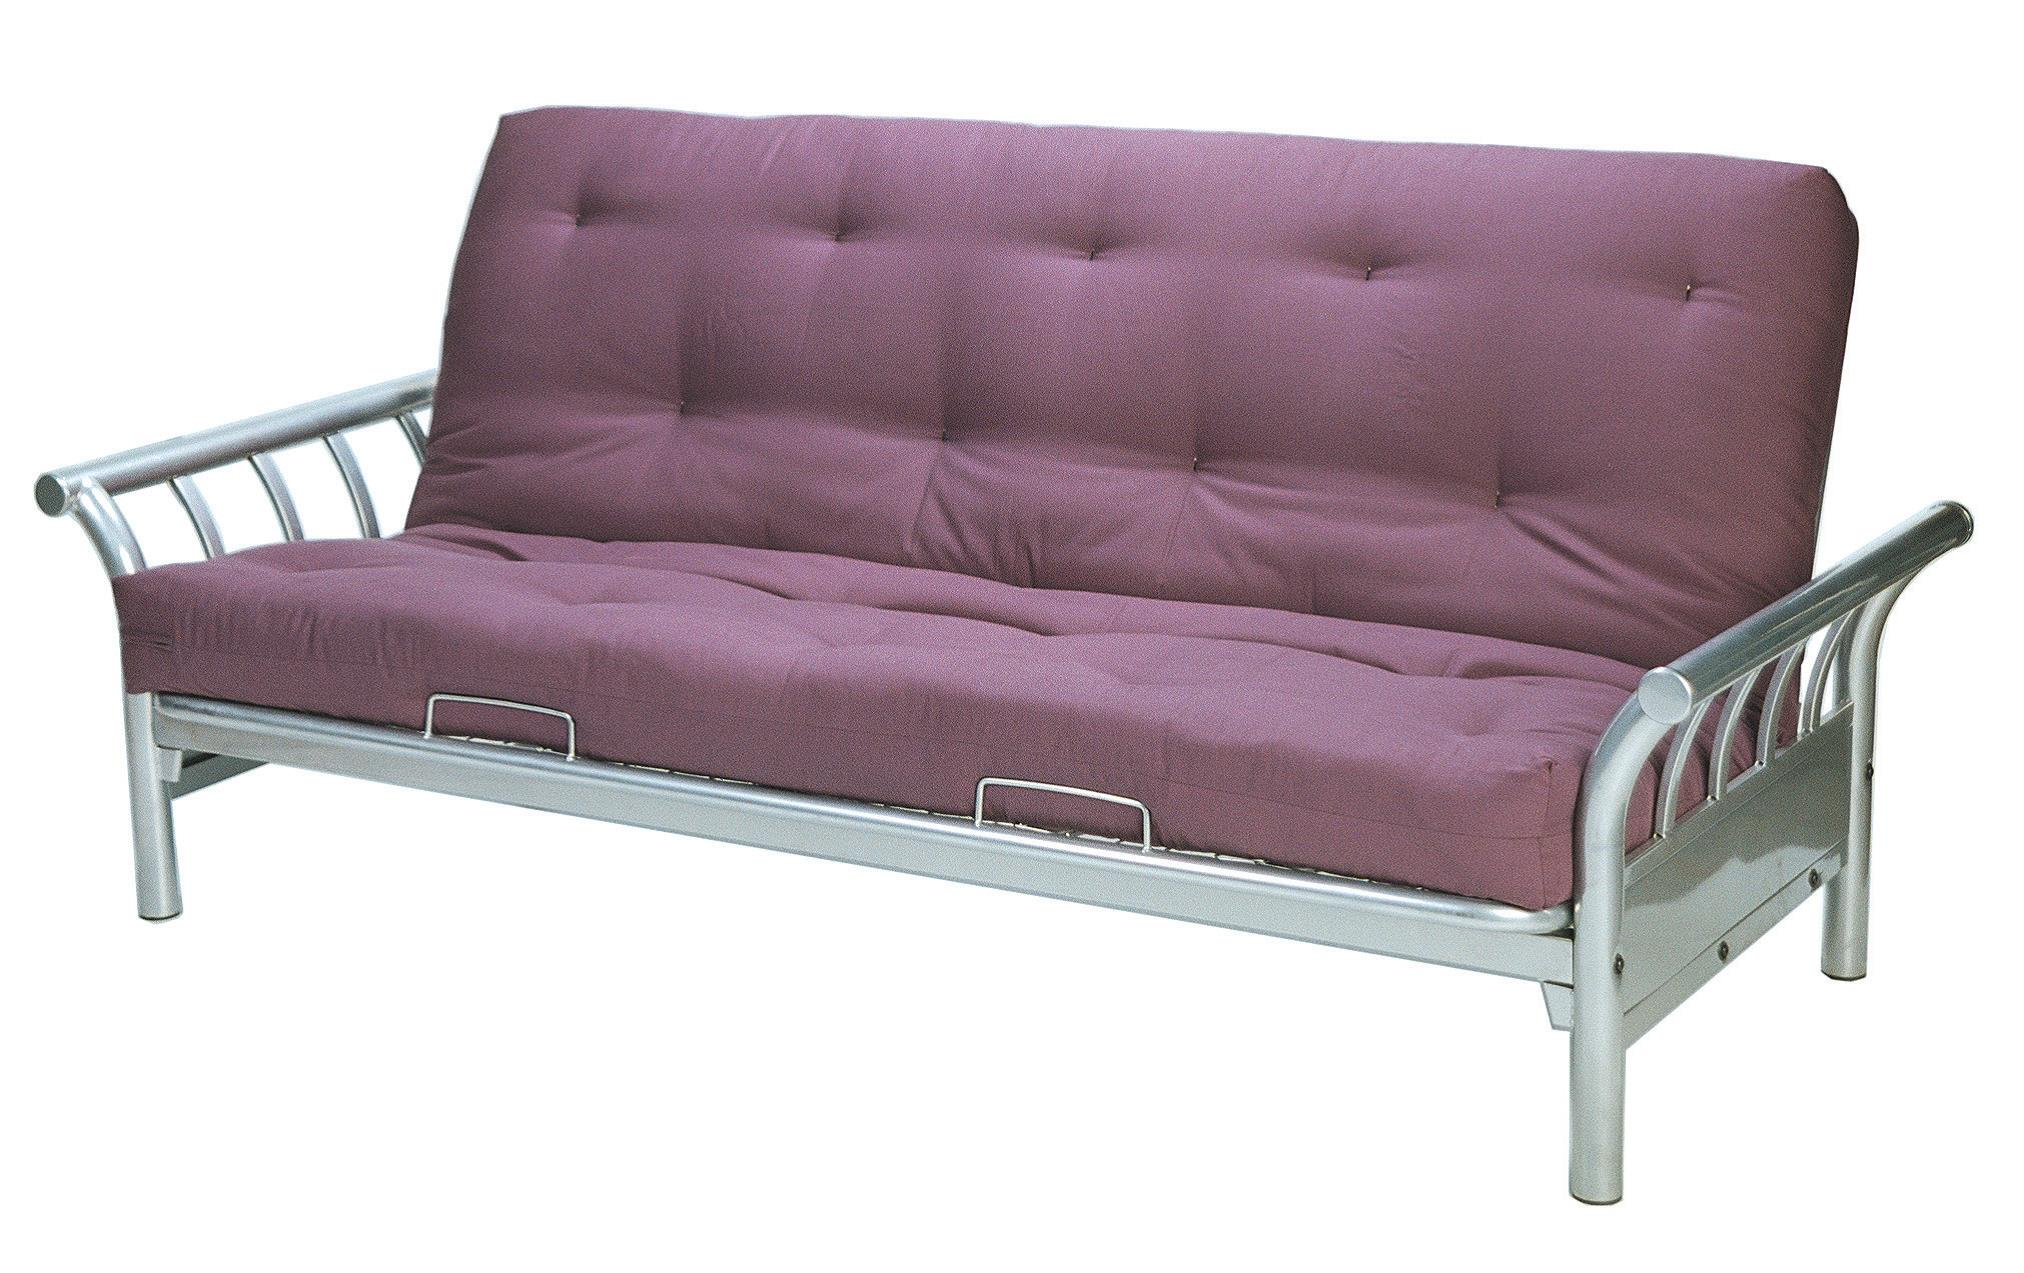 Surf Double Futon Sofa Lounge Bed Frame Silver Quilted Futon Mattress Double Ab Fab Furniture Penrith